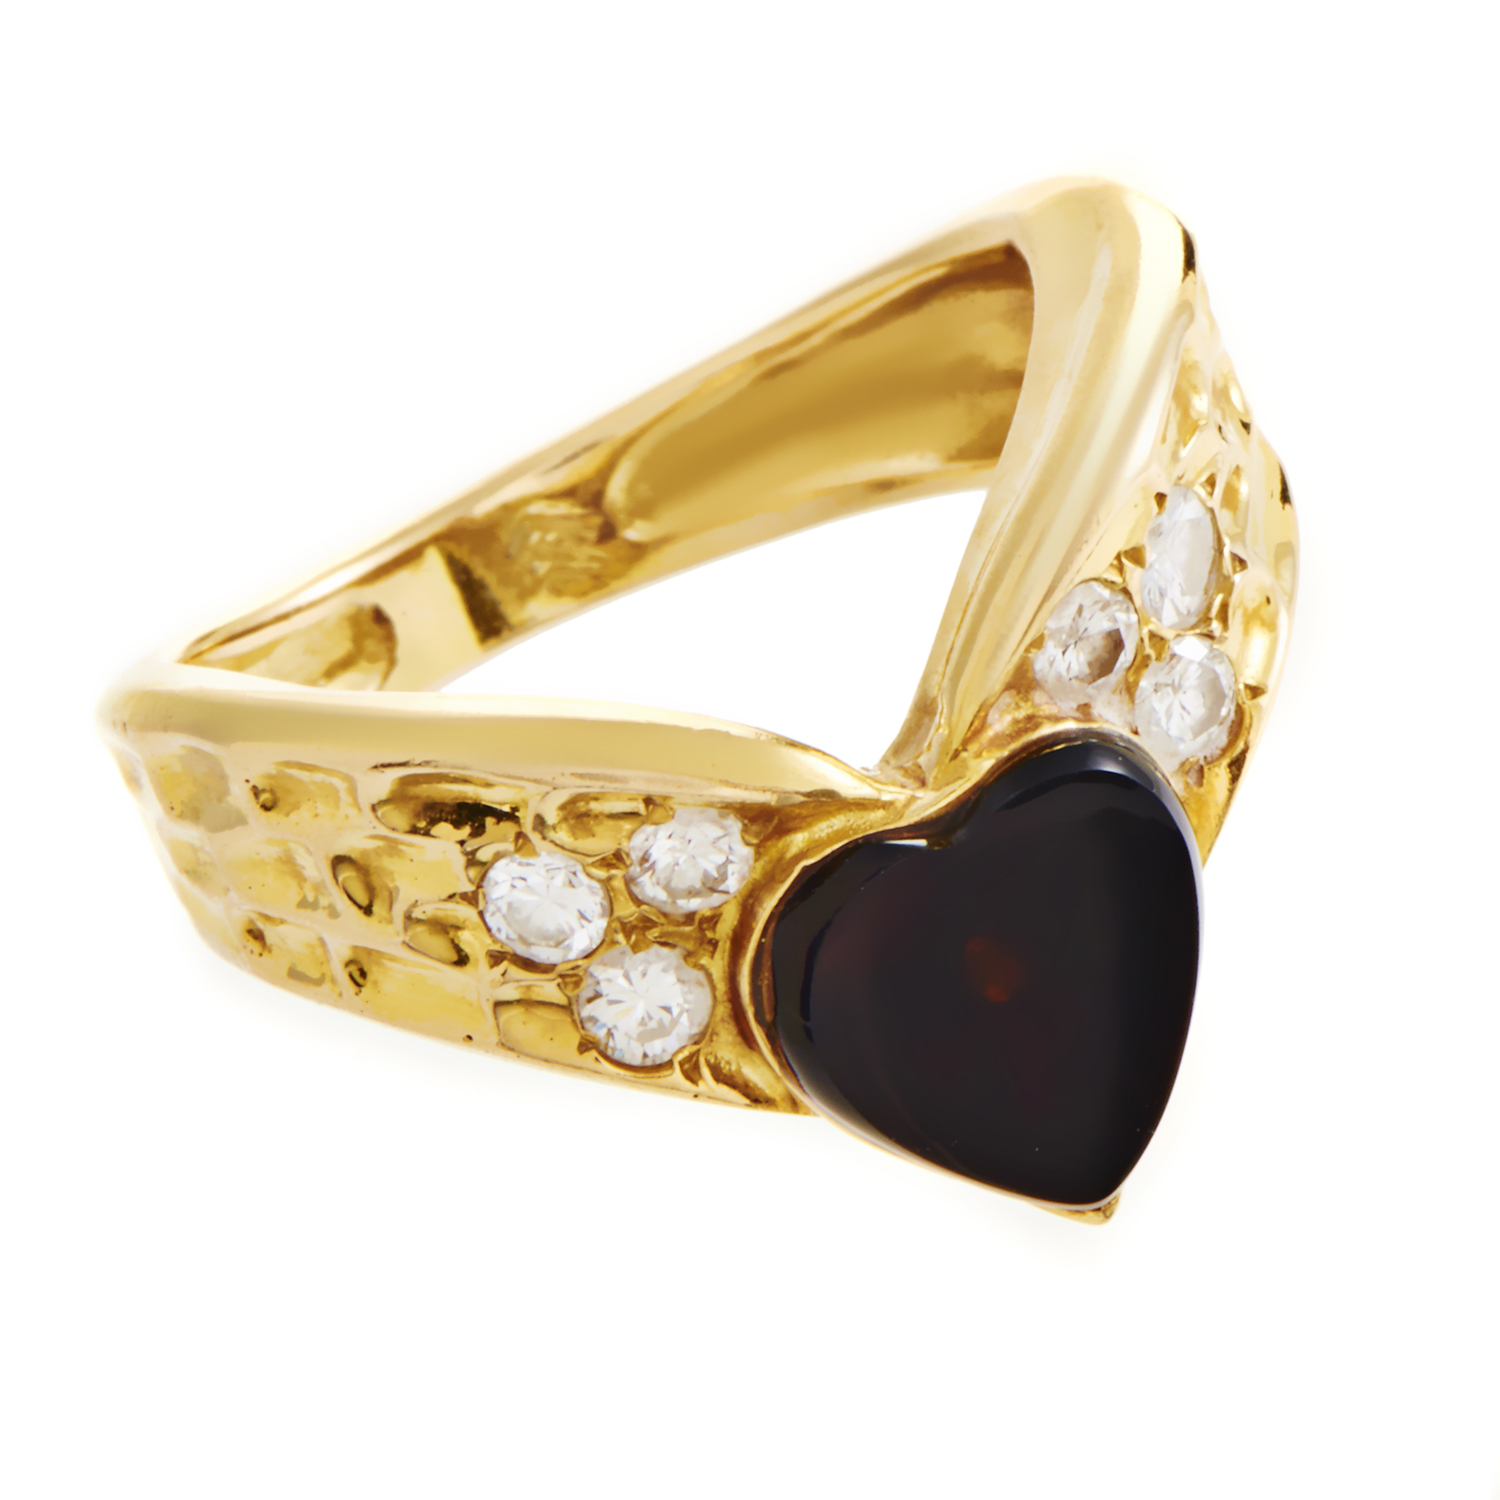 Van Cleef & Arpels Women's 18K Yellow Gold Diamond Band Ring